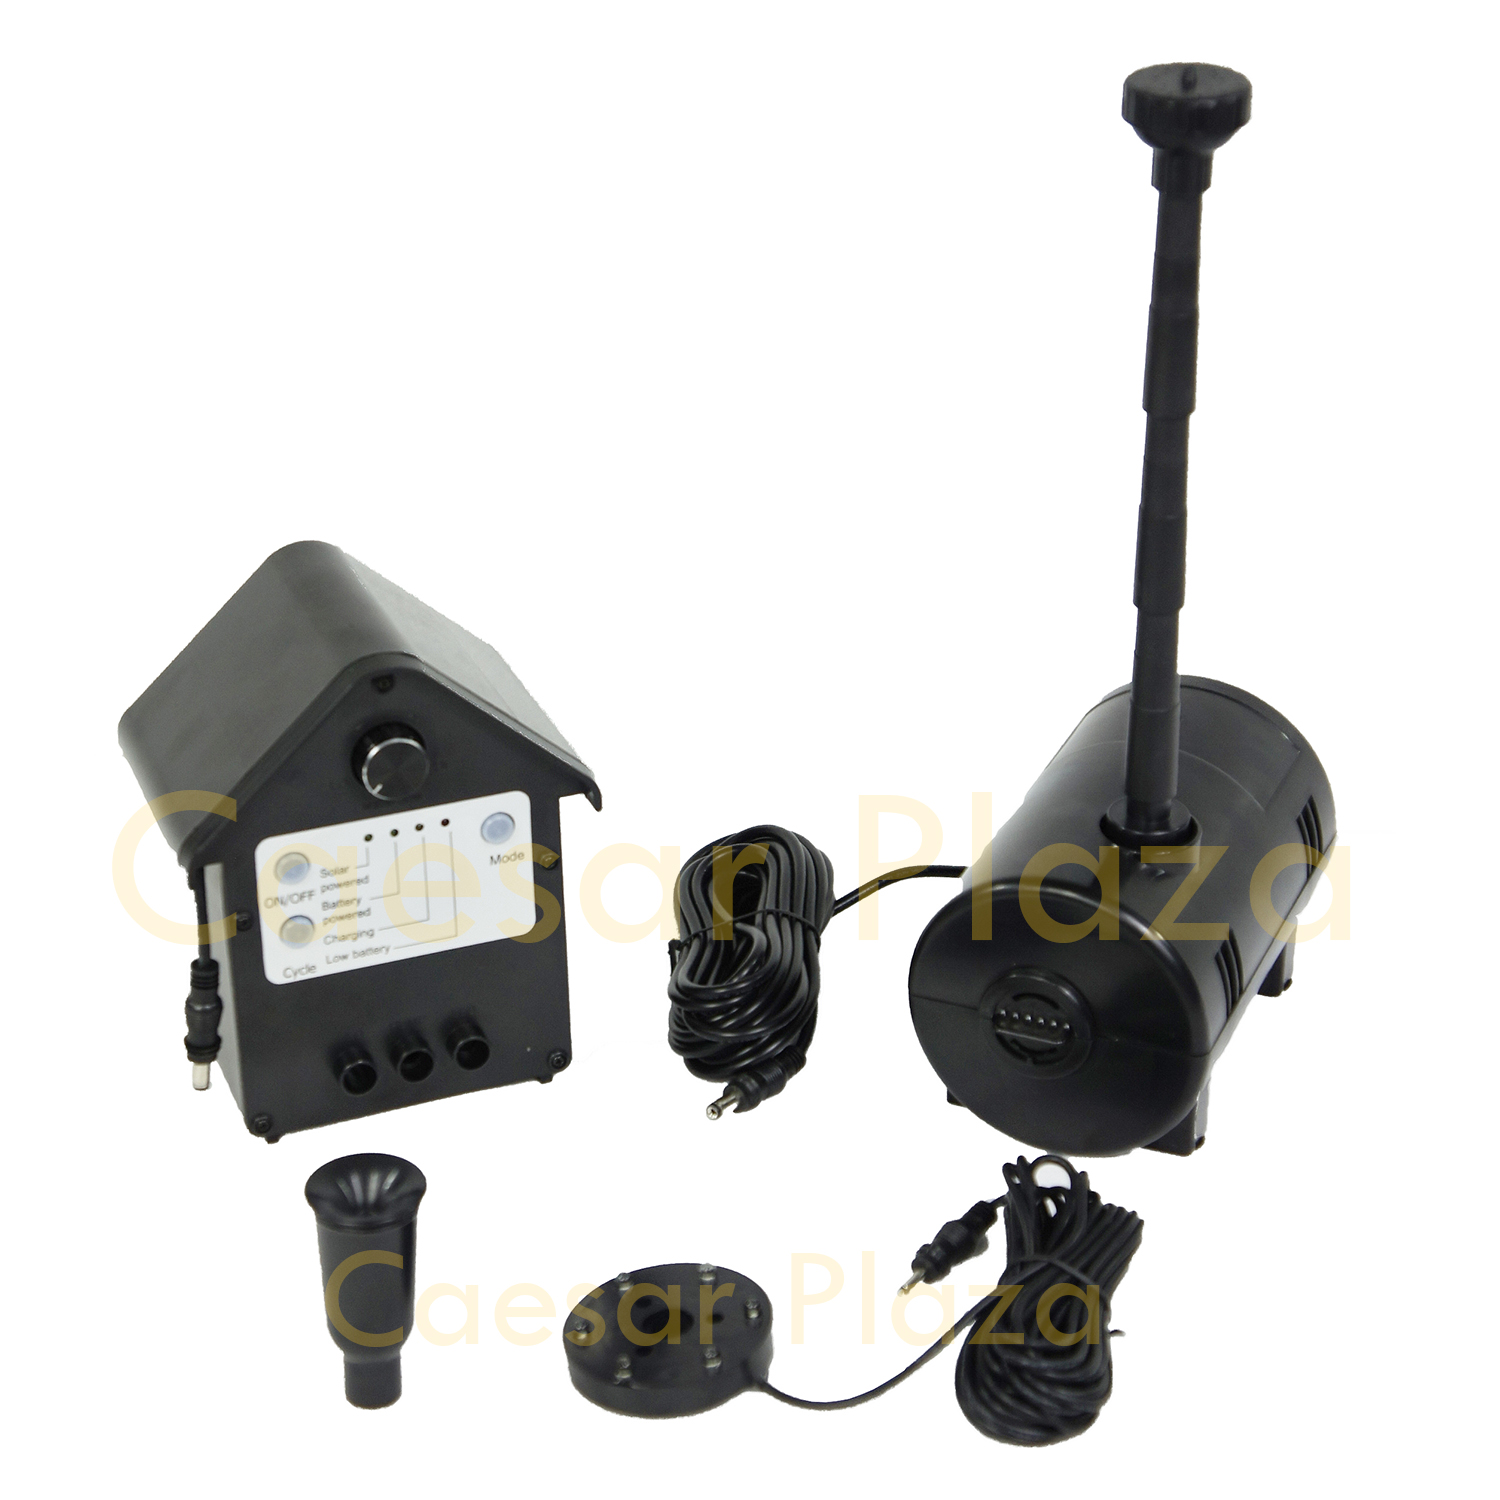 new 20w solar power outdoor fountain water pump kit. Black Bedroom Furniture Sets. Home Design Ideas